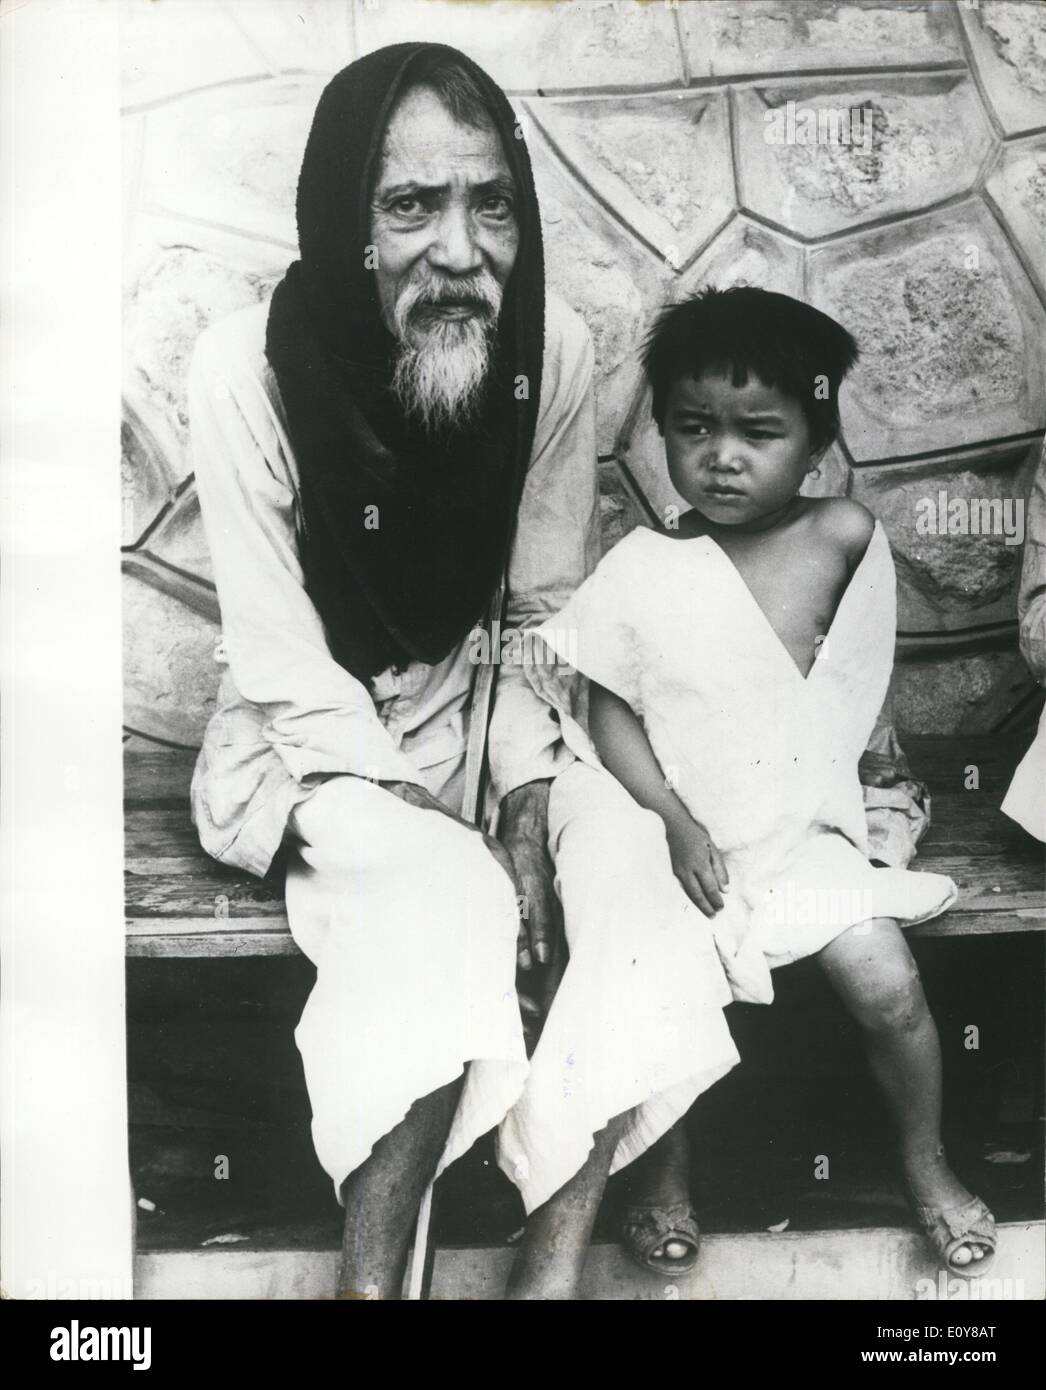 Feb. 02, 1969 - Hoping for the best in Vietnam-The very old and the very young : An elderly Vietnamese man sits patiently with his ailing grandchile for treatment at the outpatients clinic of the new Hoa Khan Children's Hospital near Da Hang. The new medical facility opened in January in one of the biggest U.S. Civic posts in South Vietnem. It will provide medical treatment for children in the fast browing refugee areas. - Stock Image